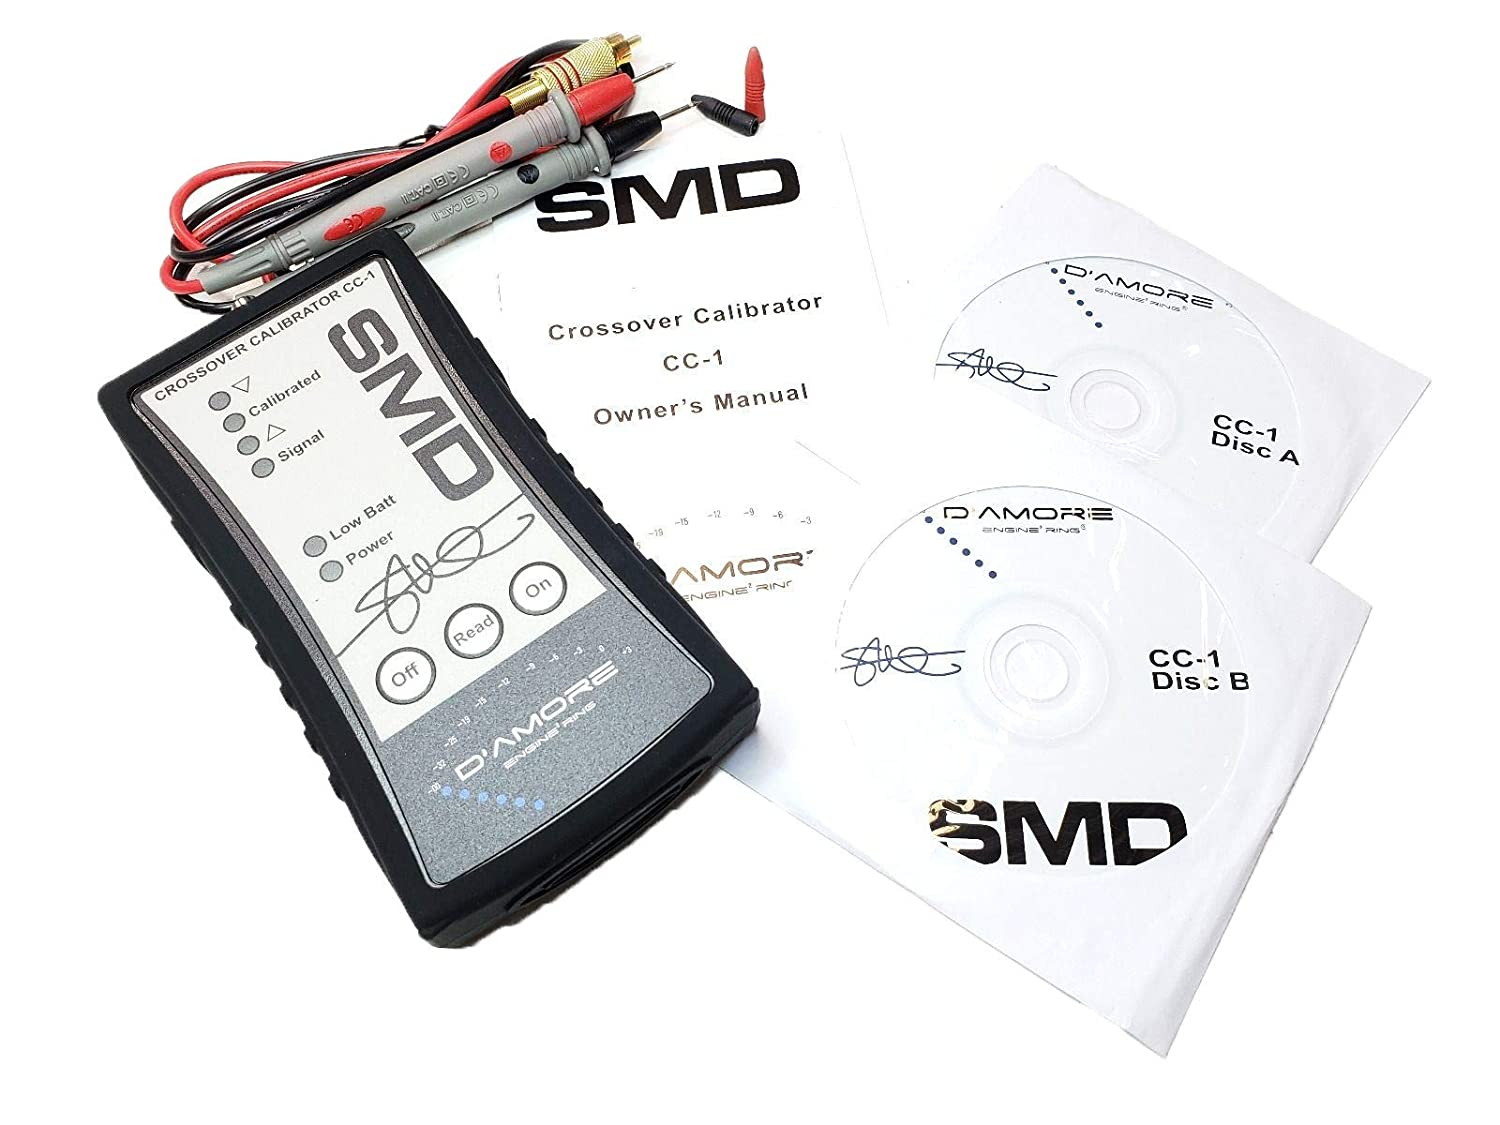 Large Max 70% OFF discharge sale SMD Crossover Calibrator CC-1